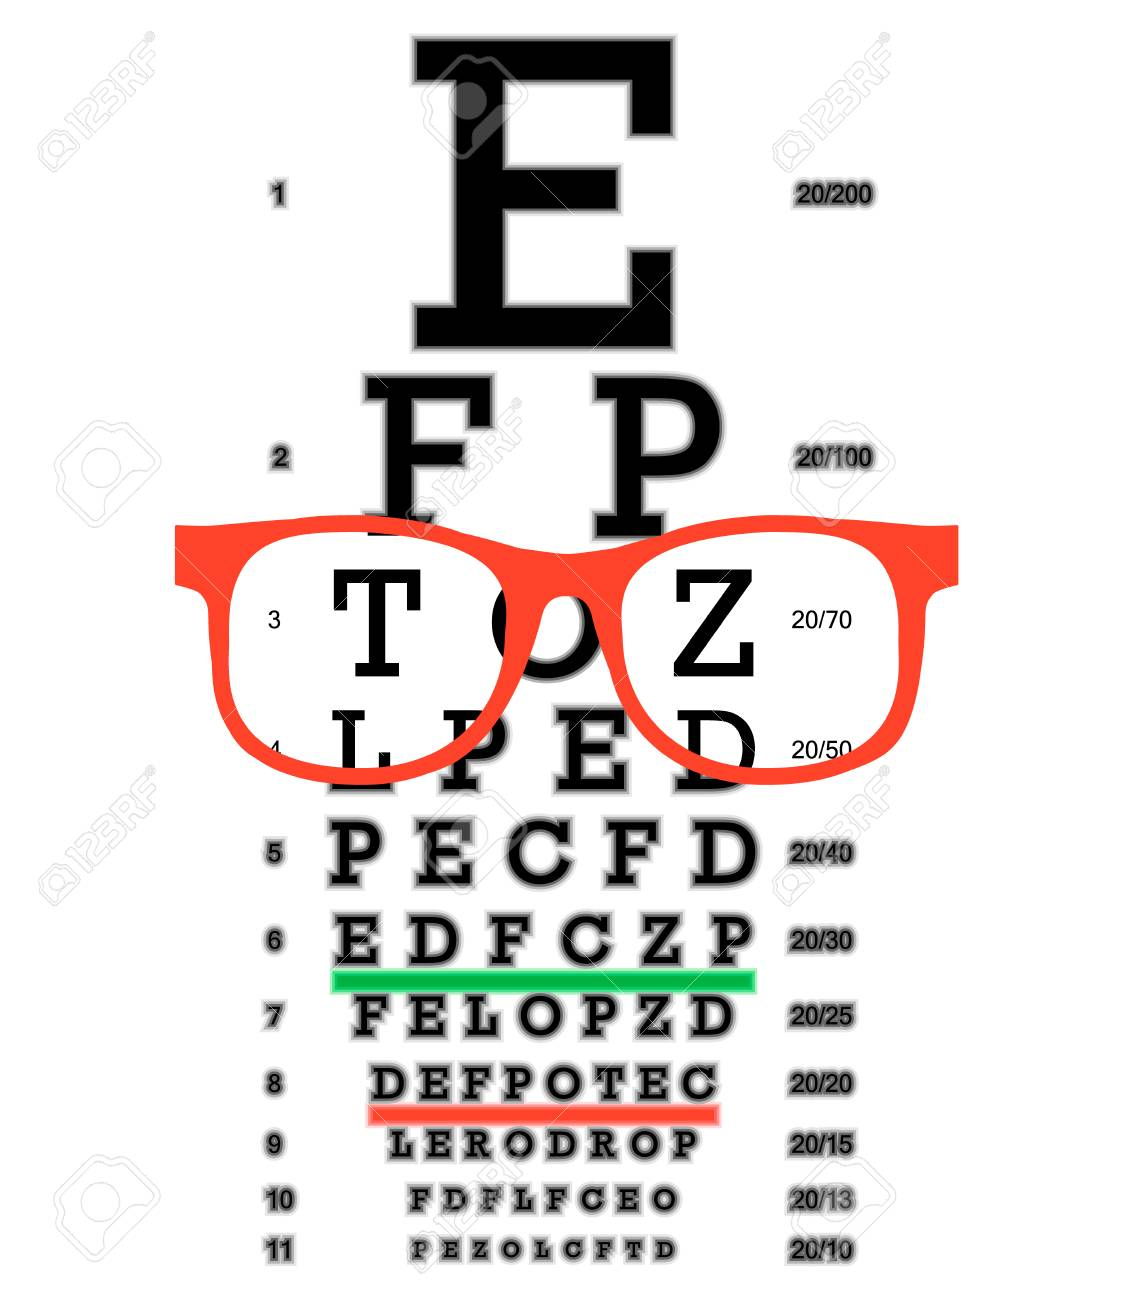 Eye Vision Test Poor Eyesight Myopia Diagnostic On Snellen Eye Stock Photo Picture And Royalty Free Image Image 115847700